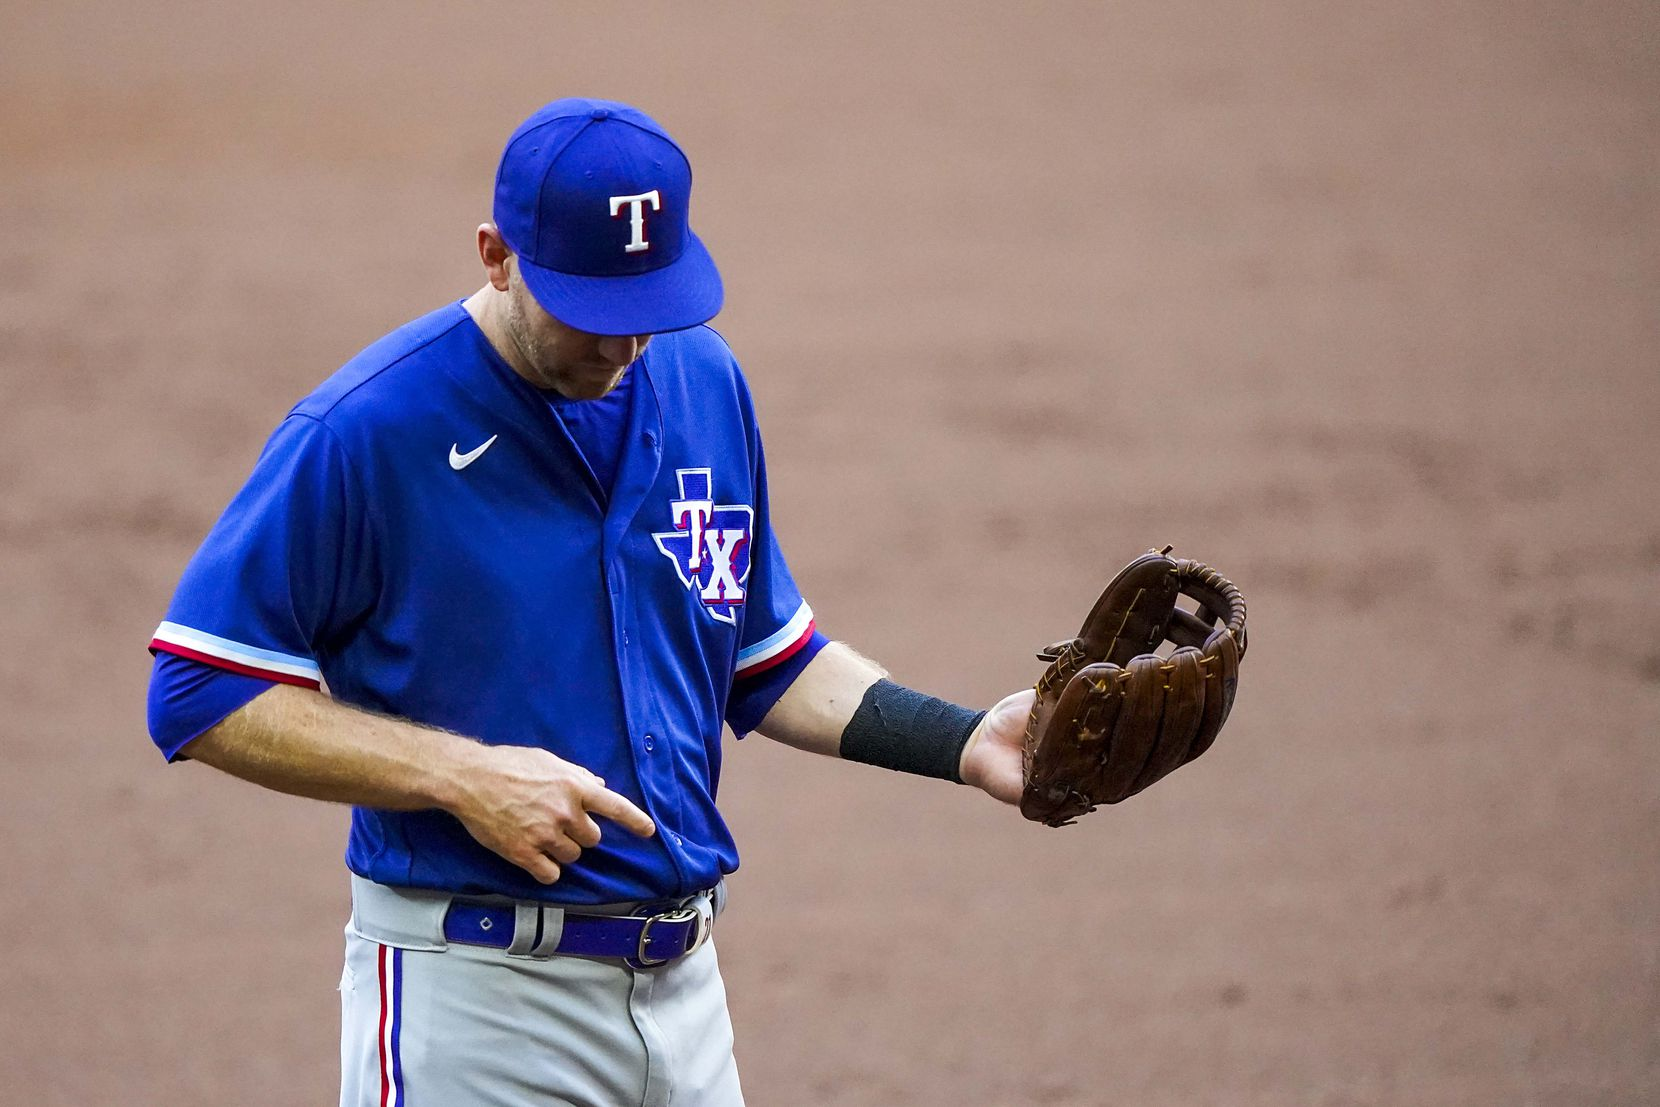 Third baseman Todd Frazier plays air guitar between batters in an intrasquad game during Texas Rangers Summer Camp at Globe Life Field on Friday, July 17, 2020.